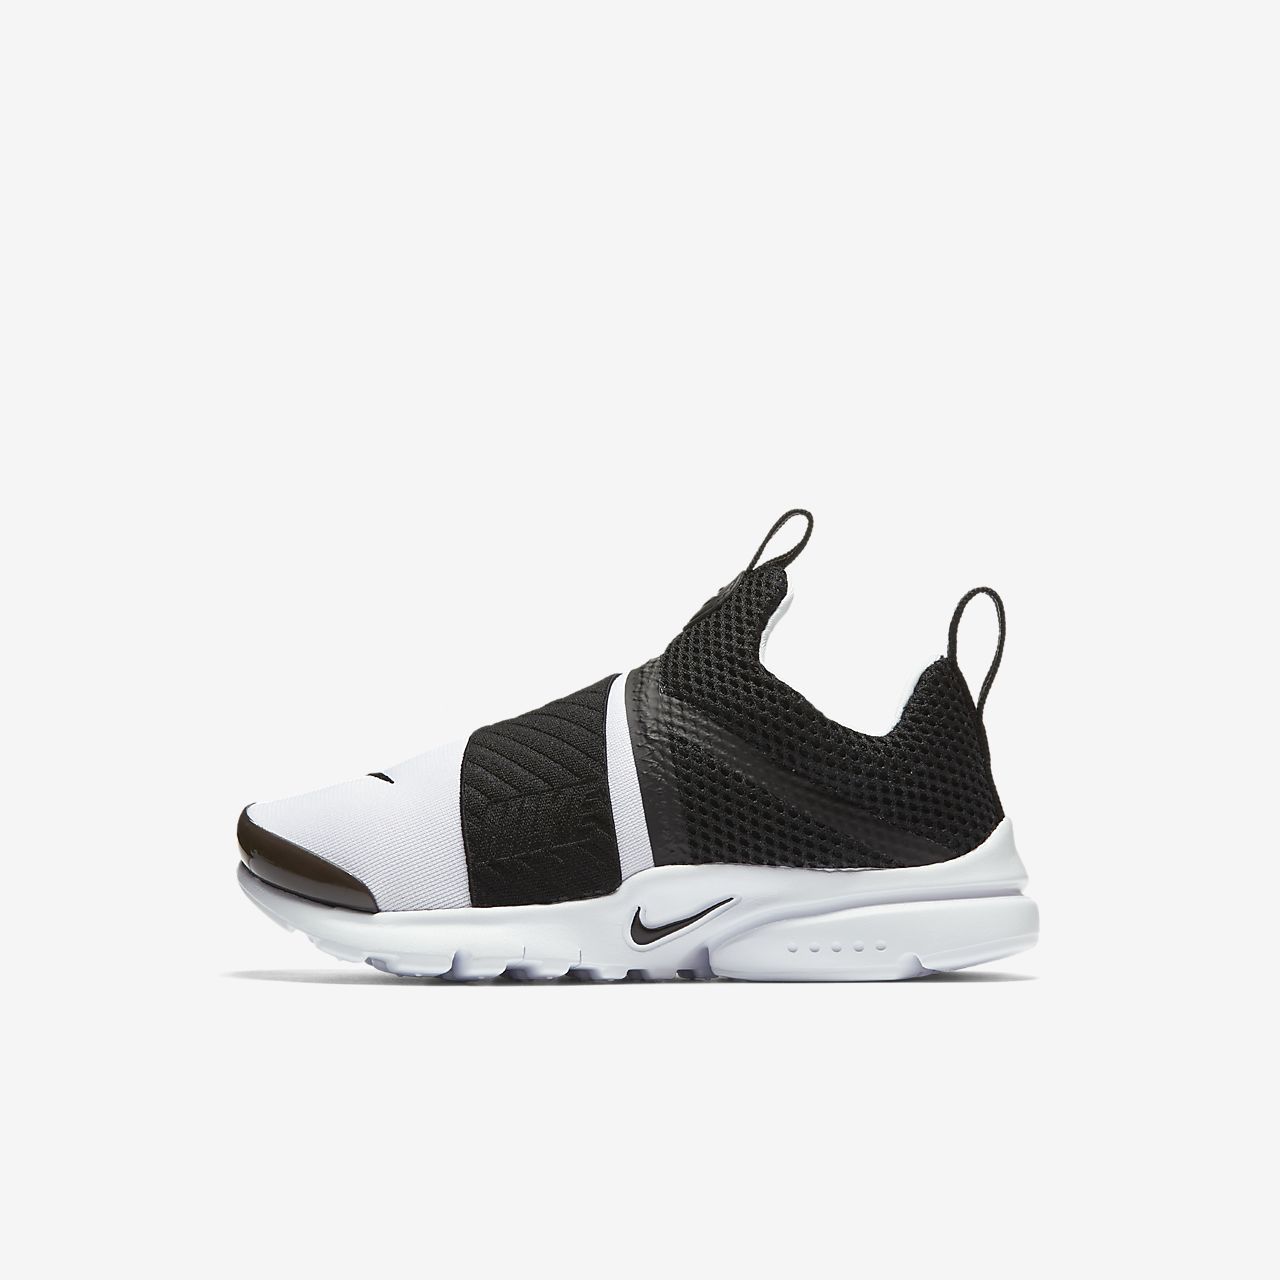 nike tanjun little kid black nz